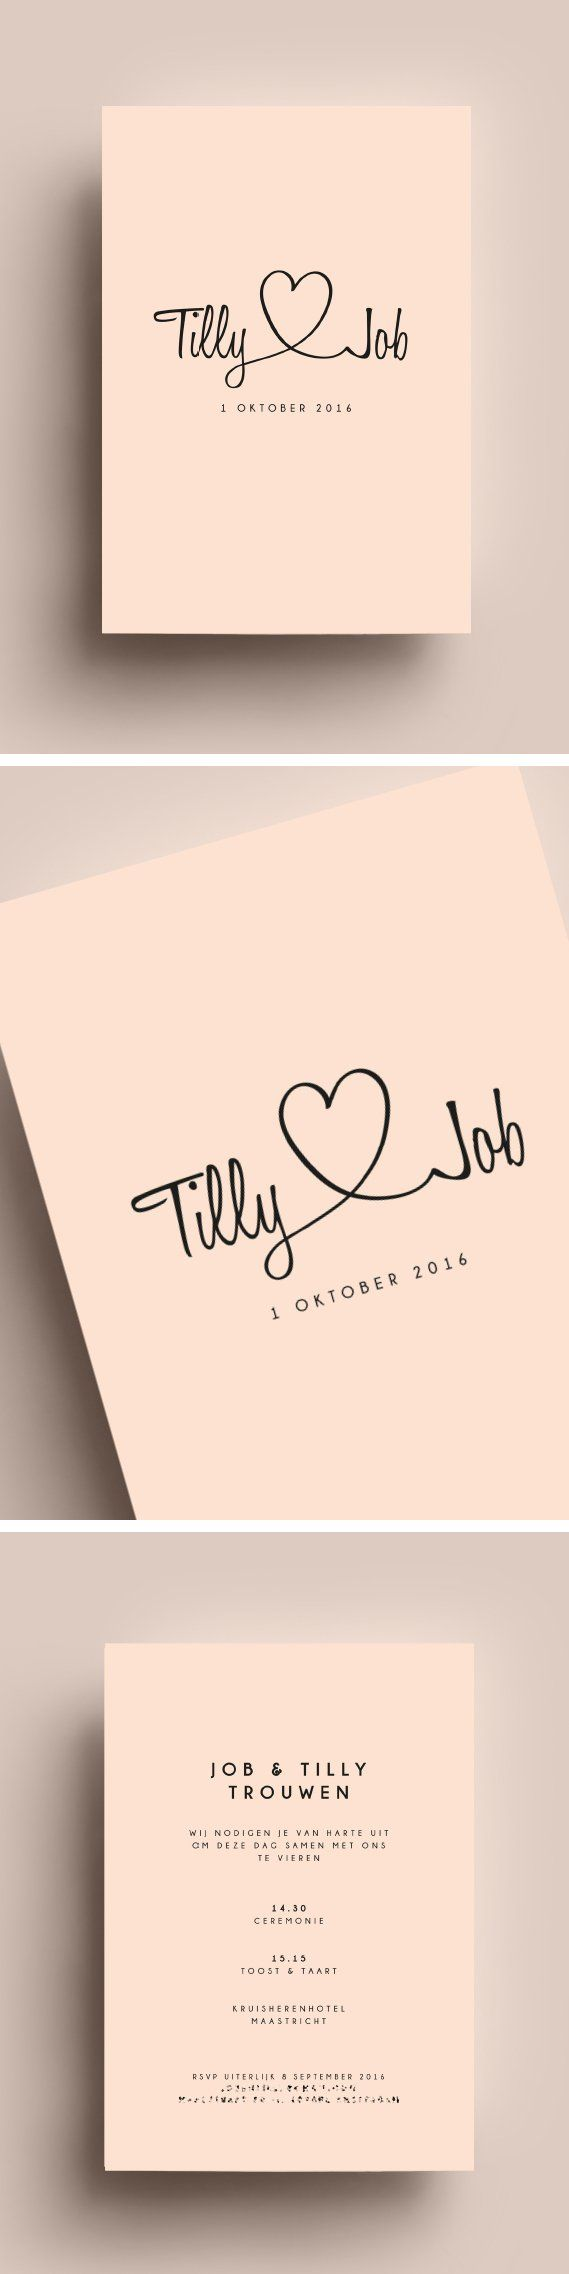 Tilly job wedding cards pinterest wedding weddings and wedding invitations stationery by nellyswed tilly job stopboris Images